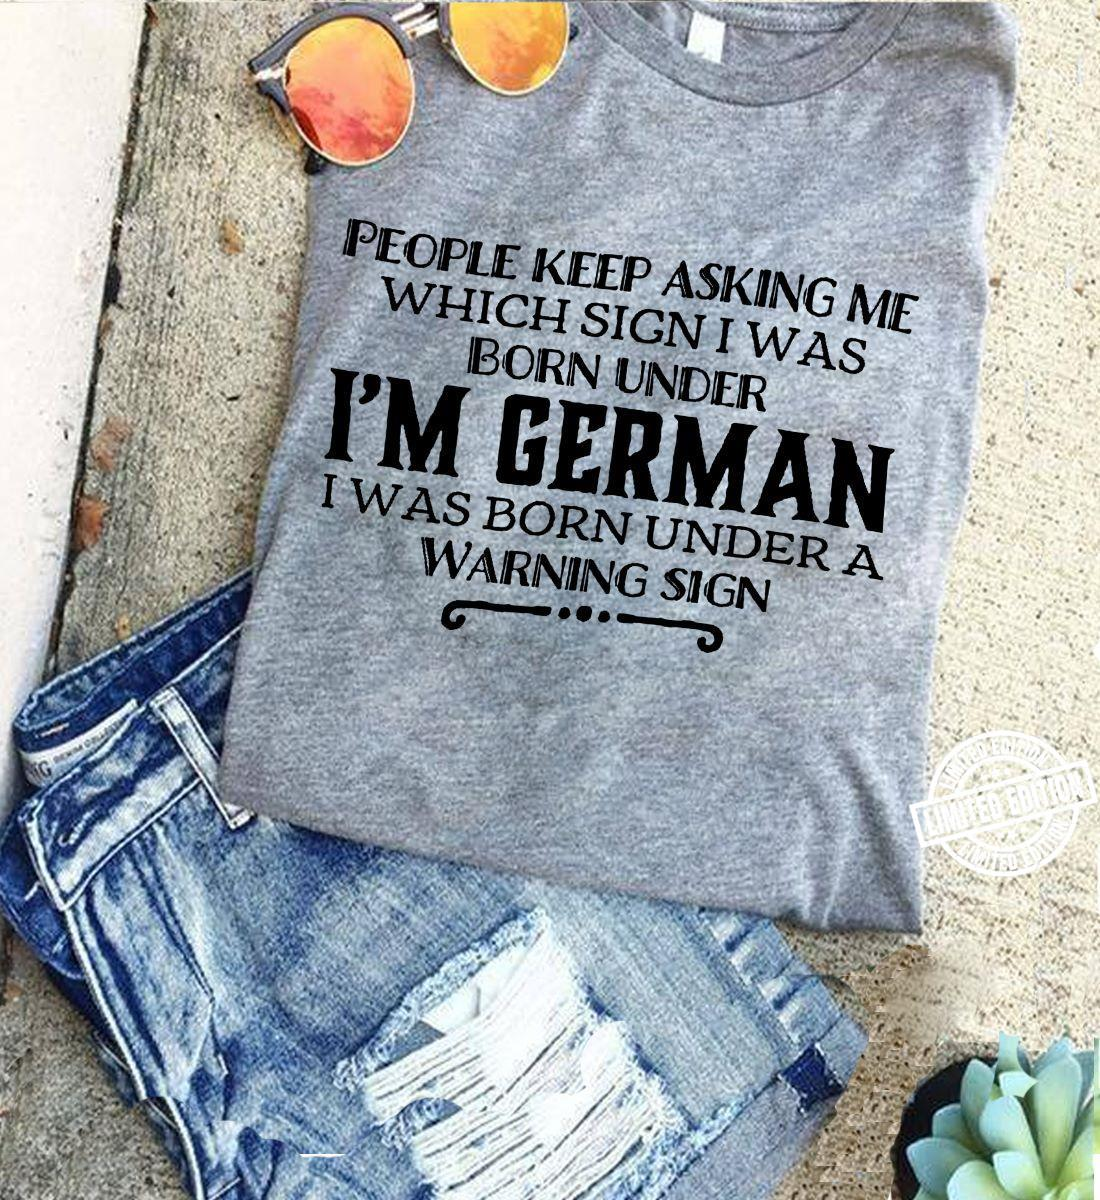 People keep asking me which sign I was born under I'm german shirt